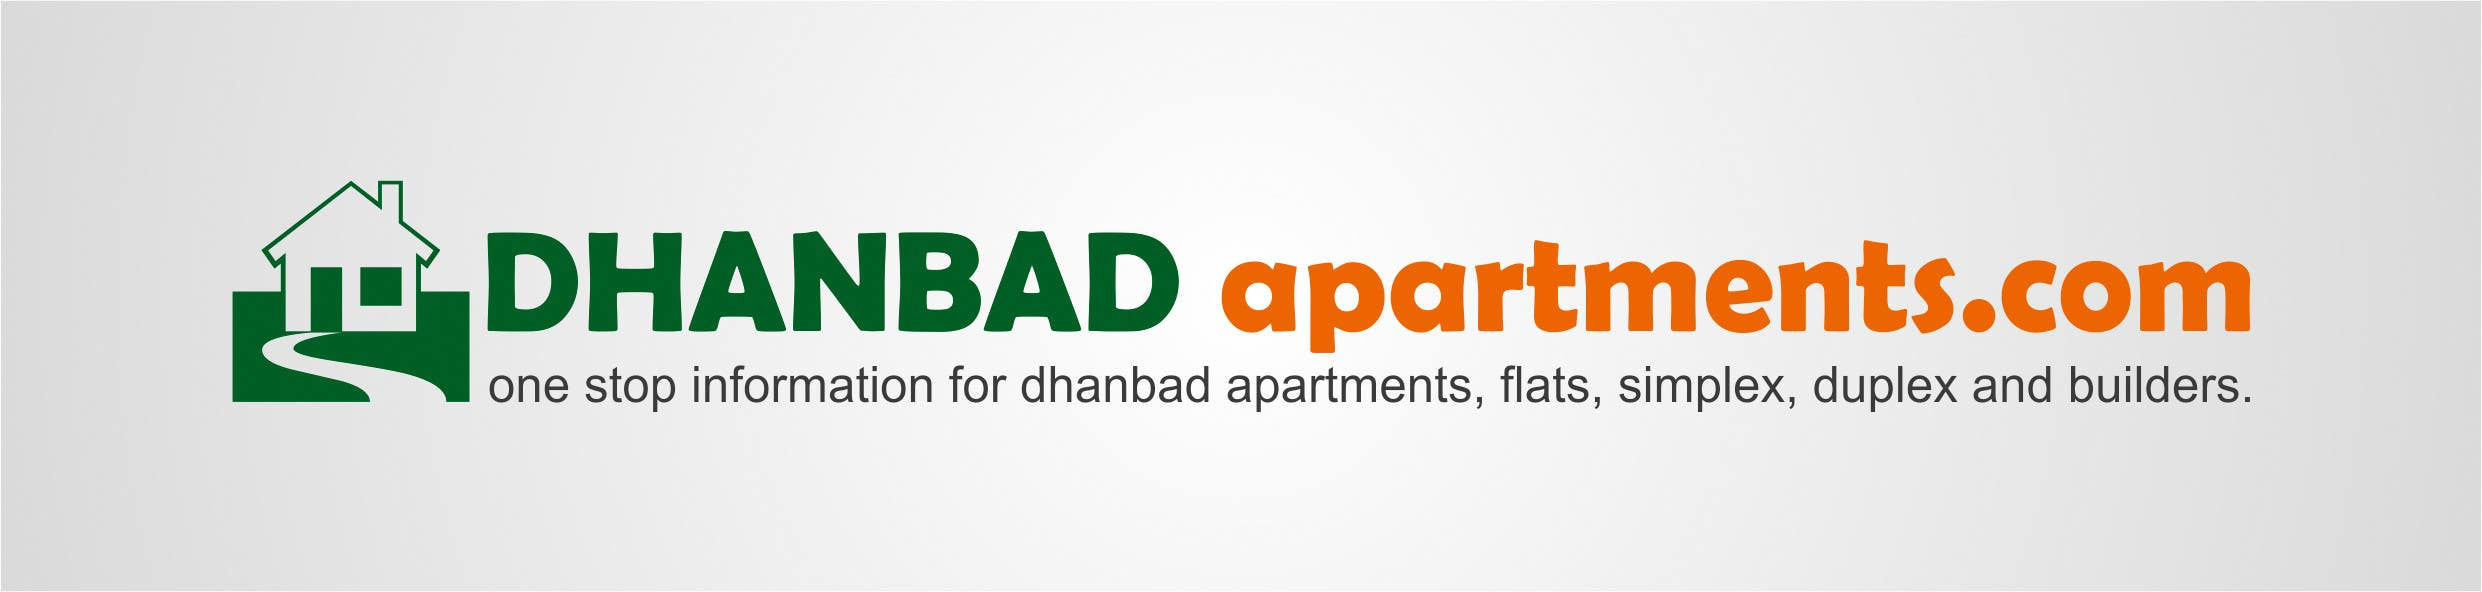 Contest Entry #22 for Design a Banner for DhanbadApartments.com